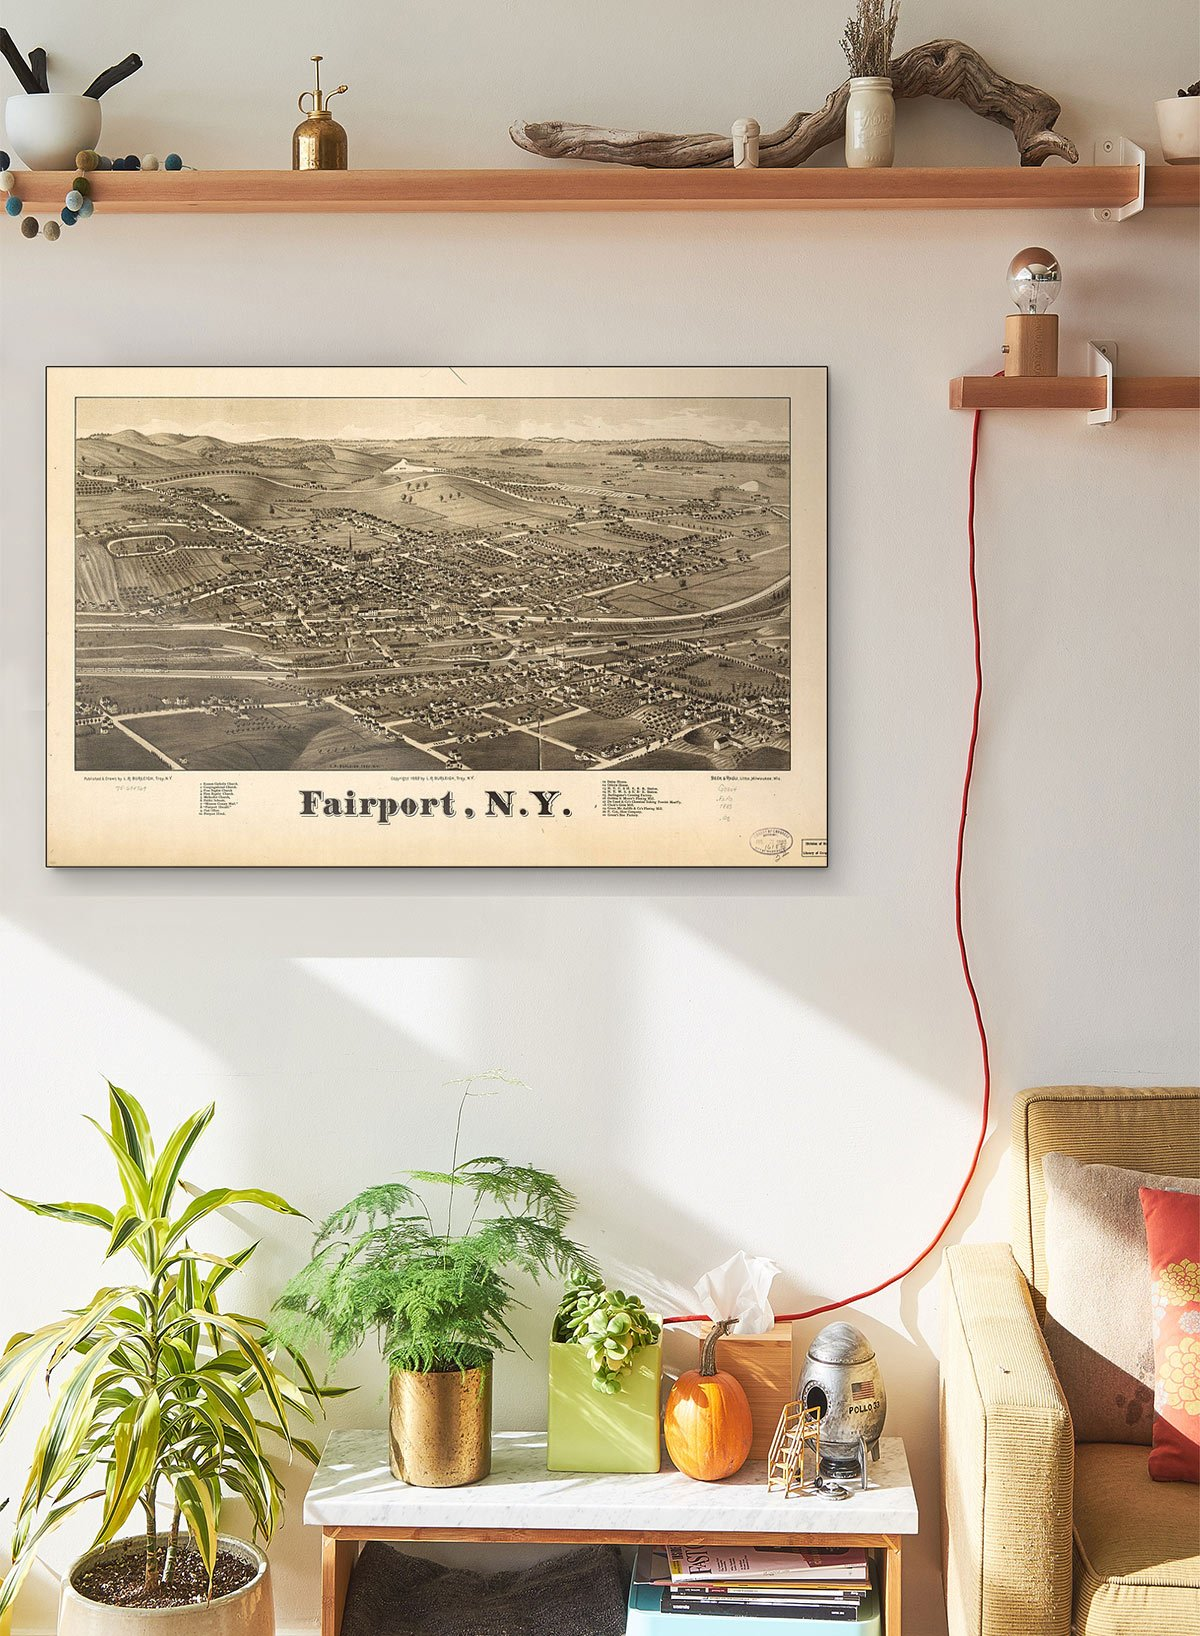 Fairport N.y LARGE Vintage Map